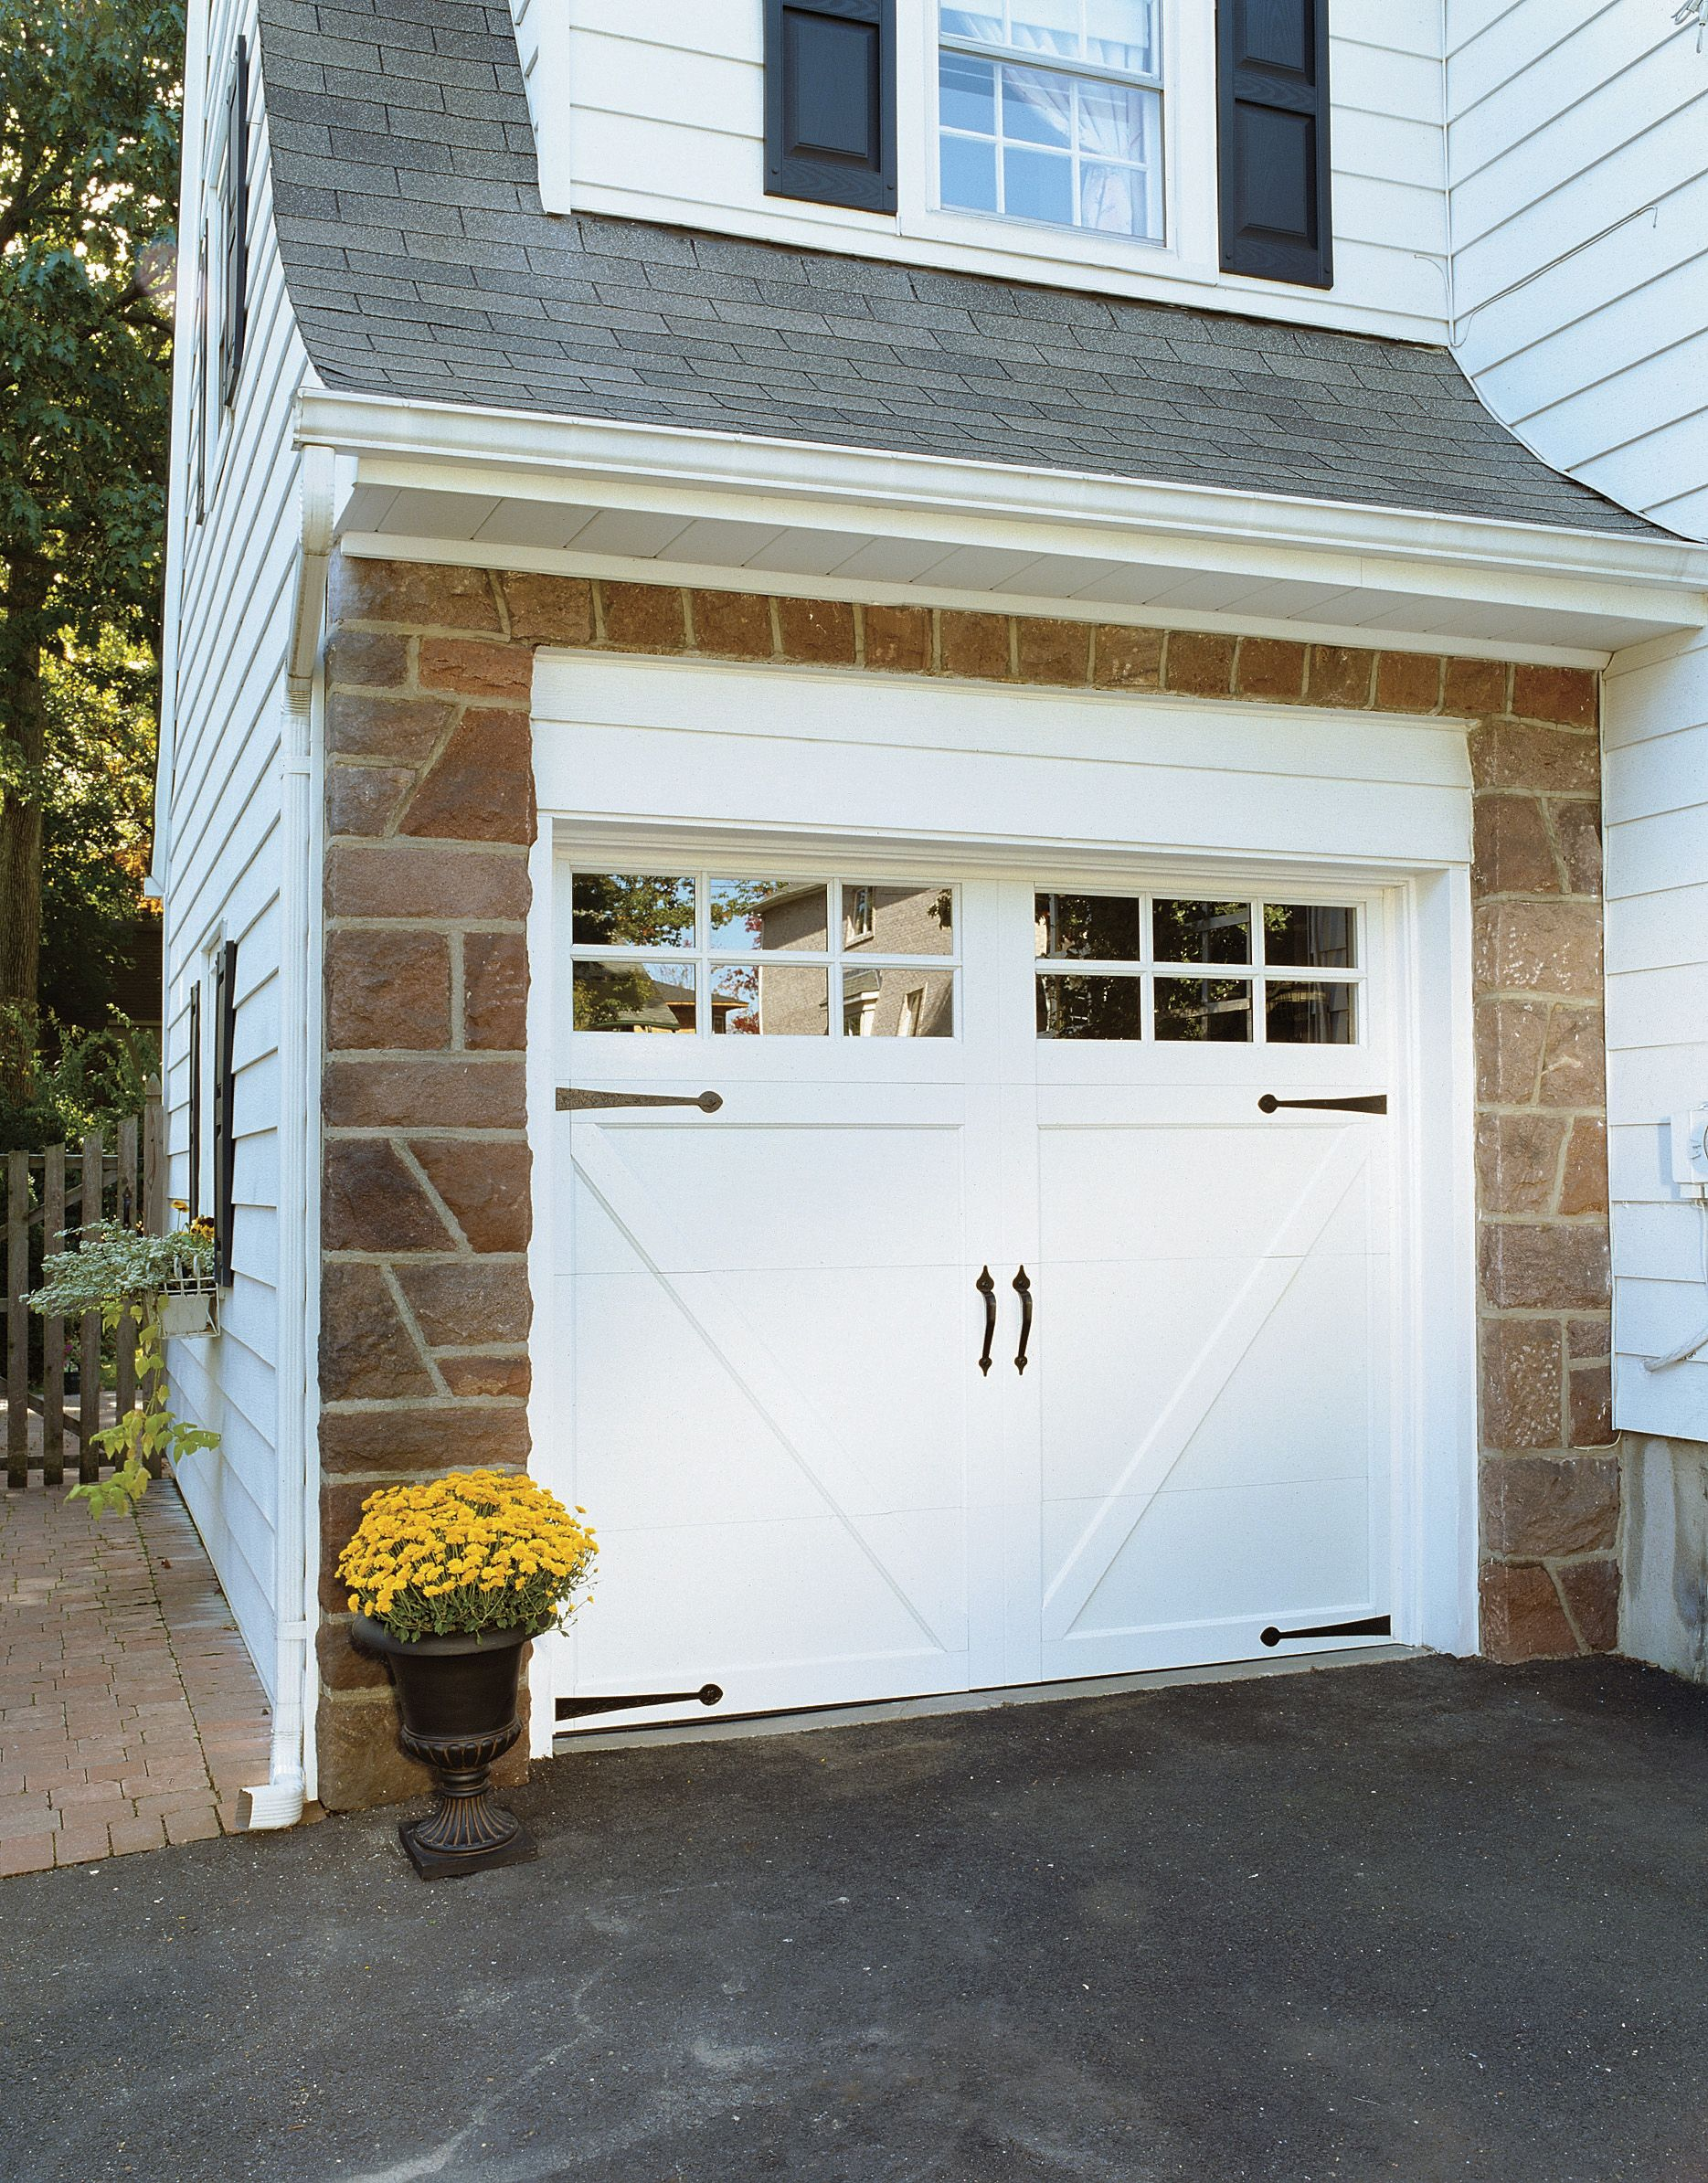 Classica northampton garage door white 9 x 8 no windows - Coastal Craftsman Cottage Featuring Clopay Coachman Collection Carriage House Garage Door Design 12 With Rec13 Windows In White Www Clopaydoor Com